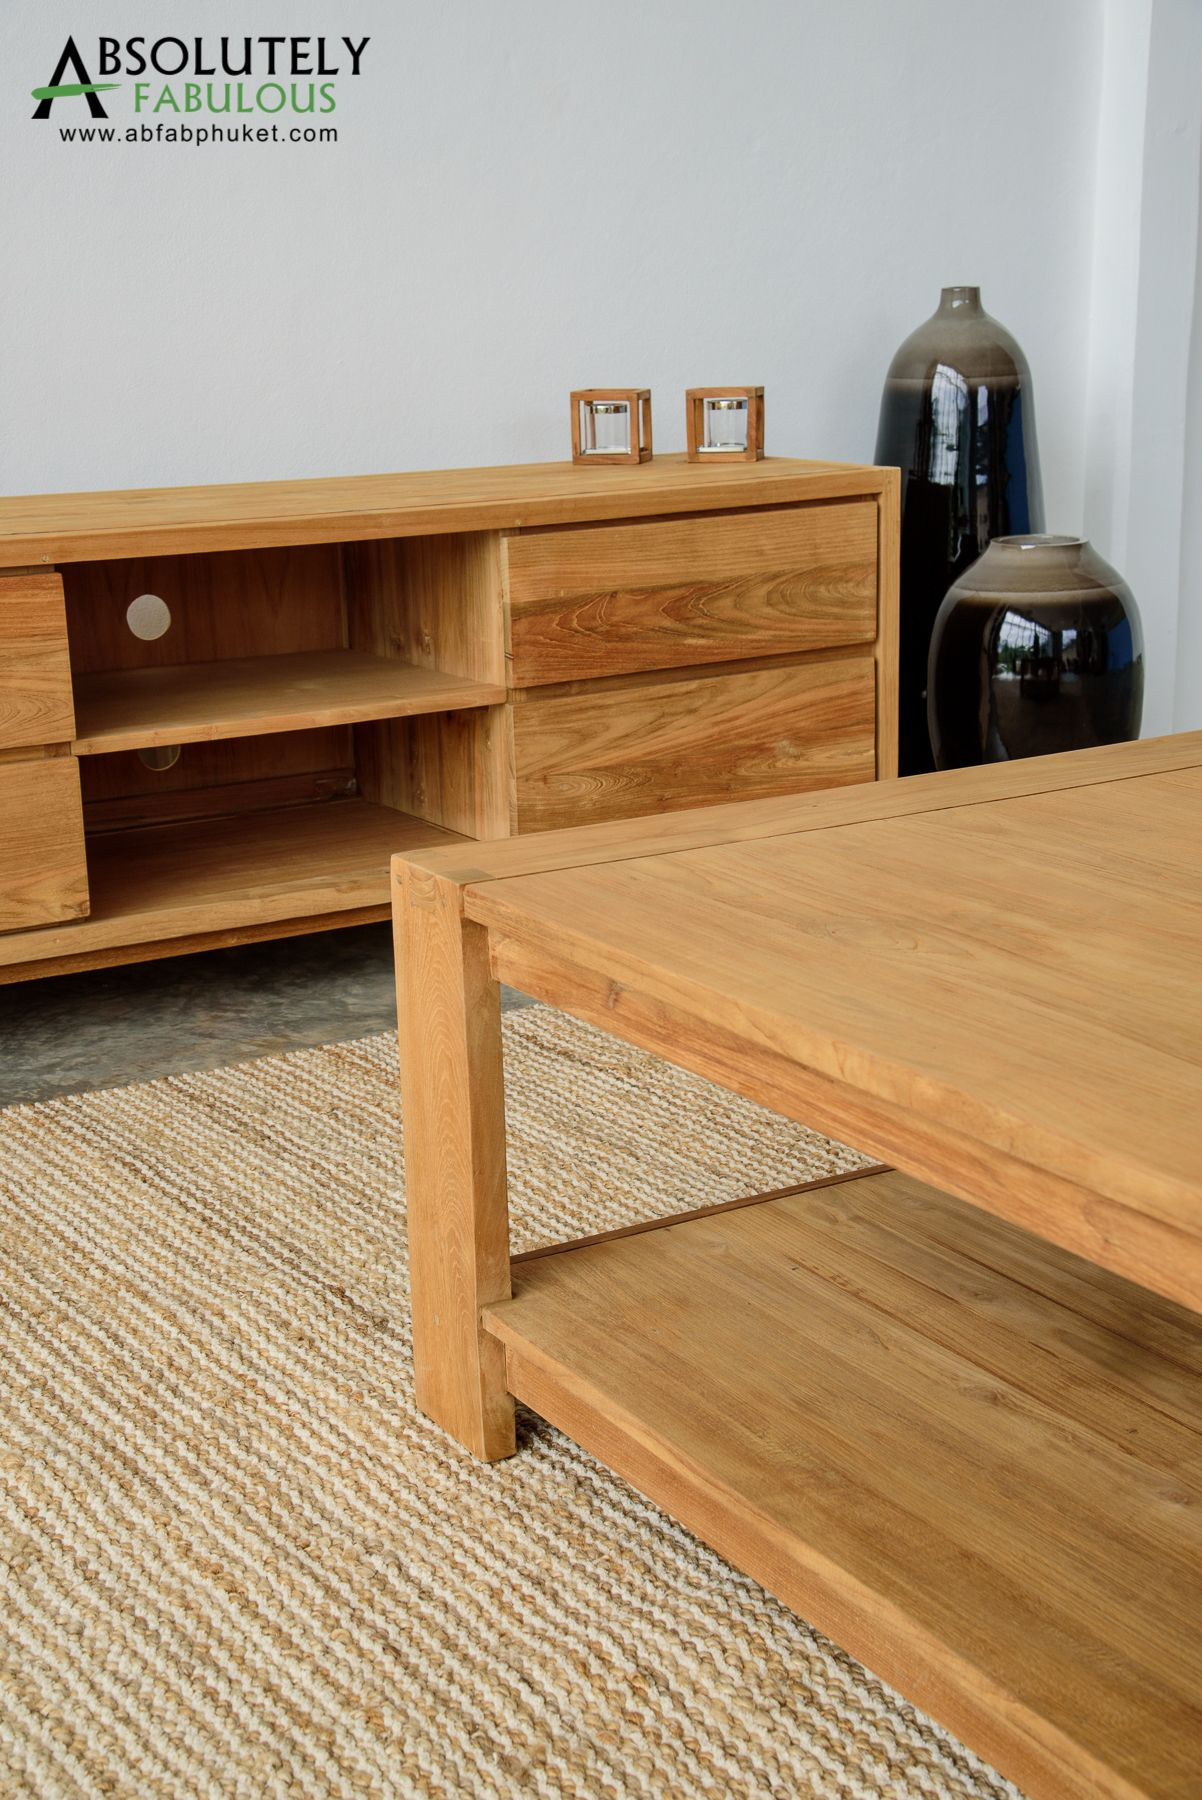 Stunning Teak Wood Furniture Beautiful Area Rugs And Home Accessories To Die For Absolutely Fabulous Has It All